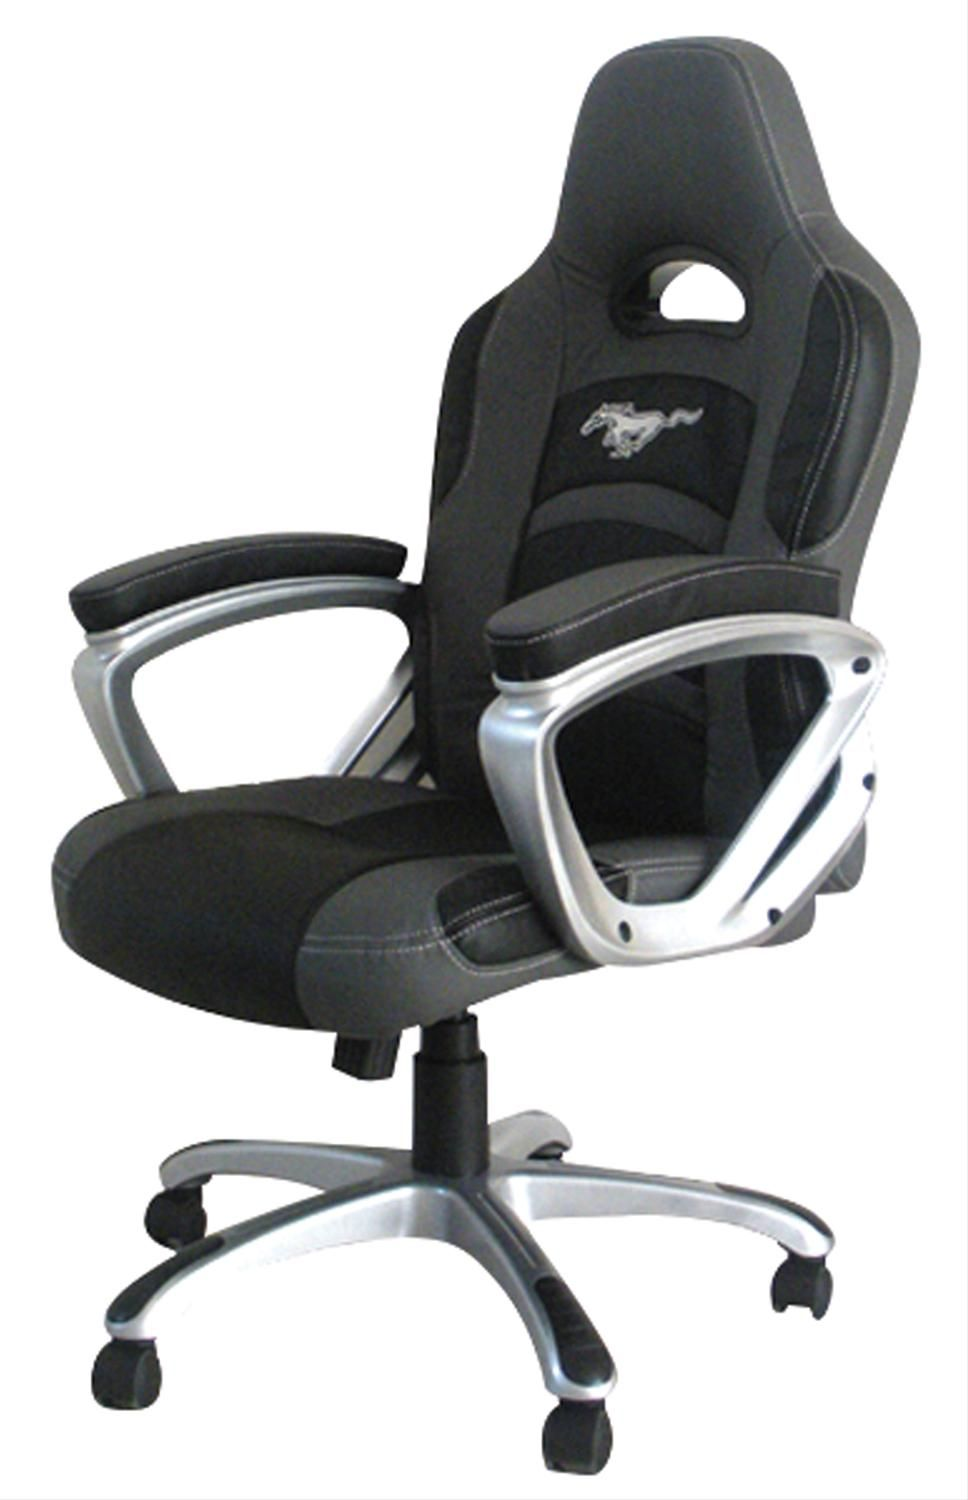 Grayblack racing office chair with ford mustang emblem